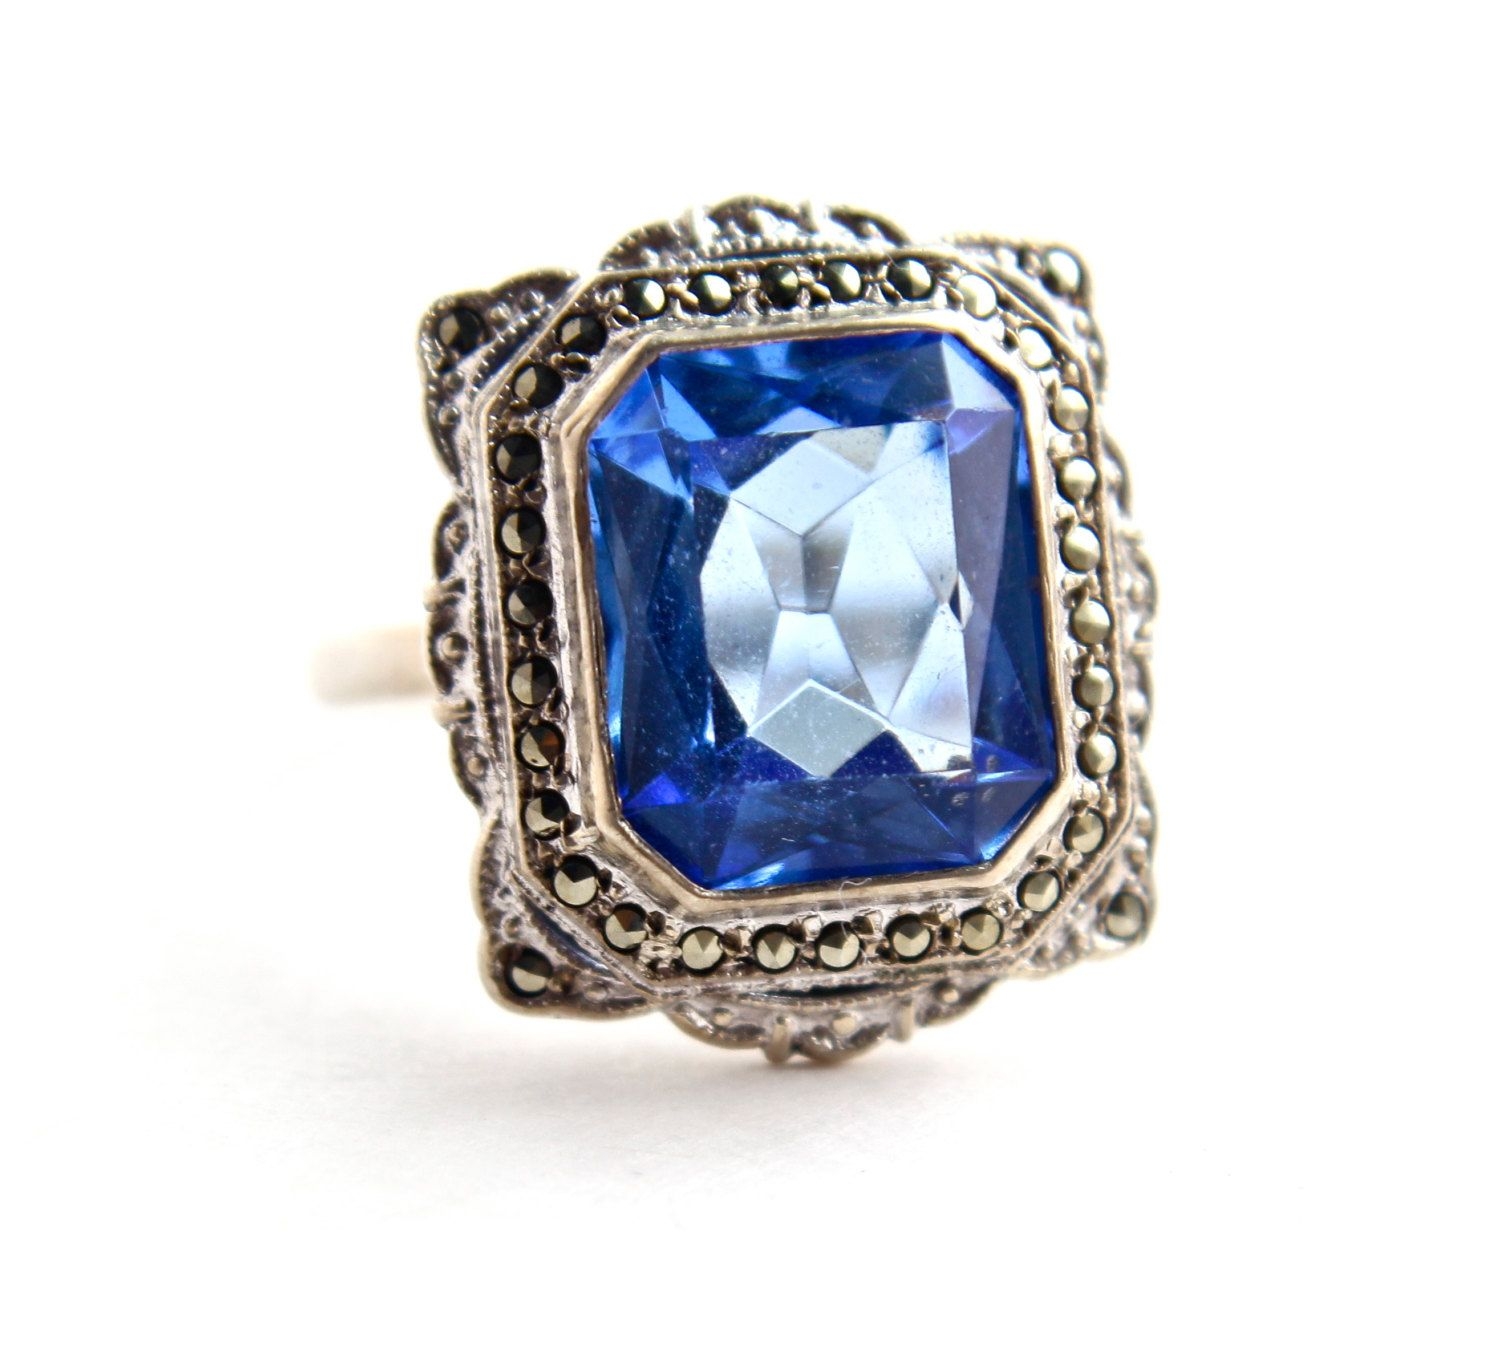 antique jewelry Art deco 1920 silver ring beautiful topaz and marcasite ring vintage hand crafted ring